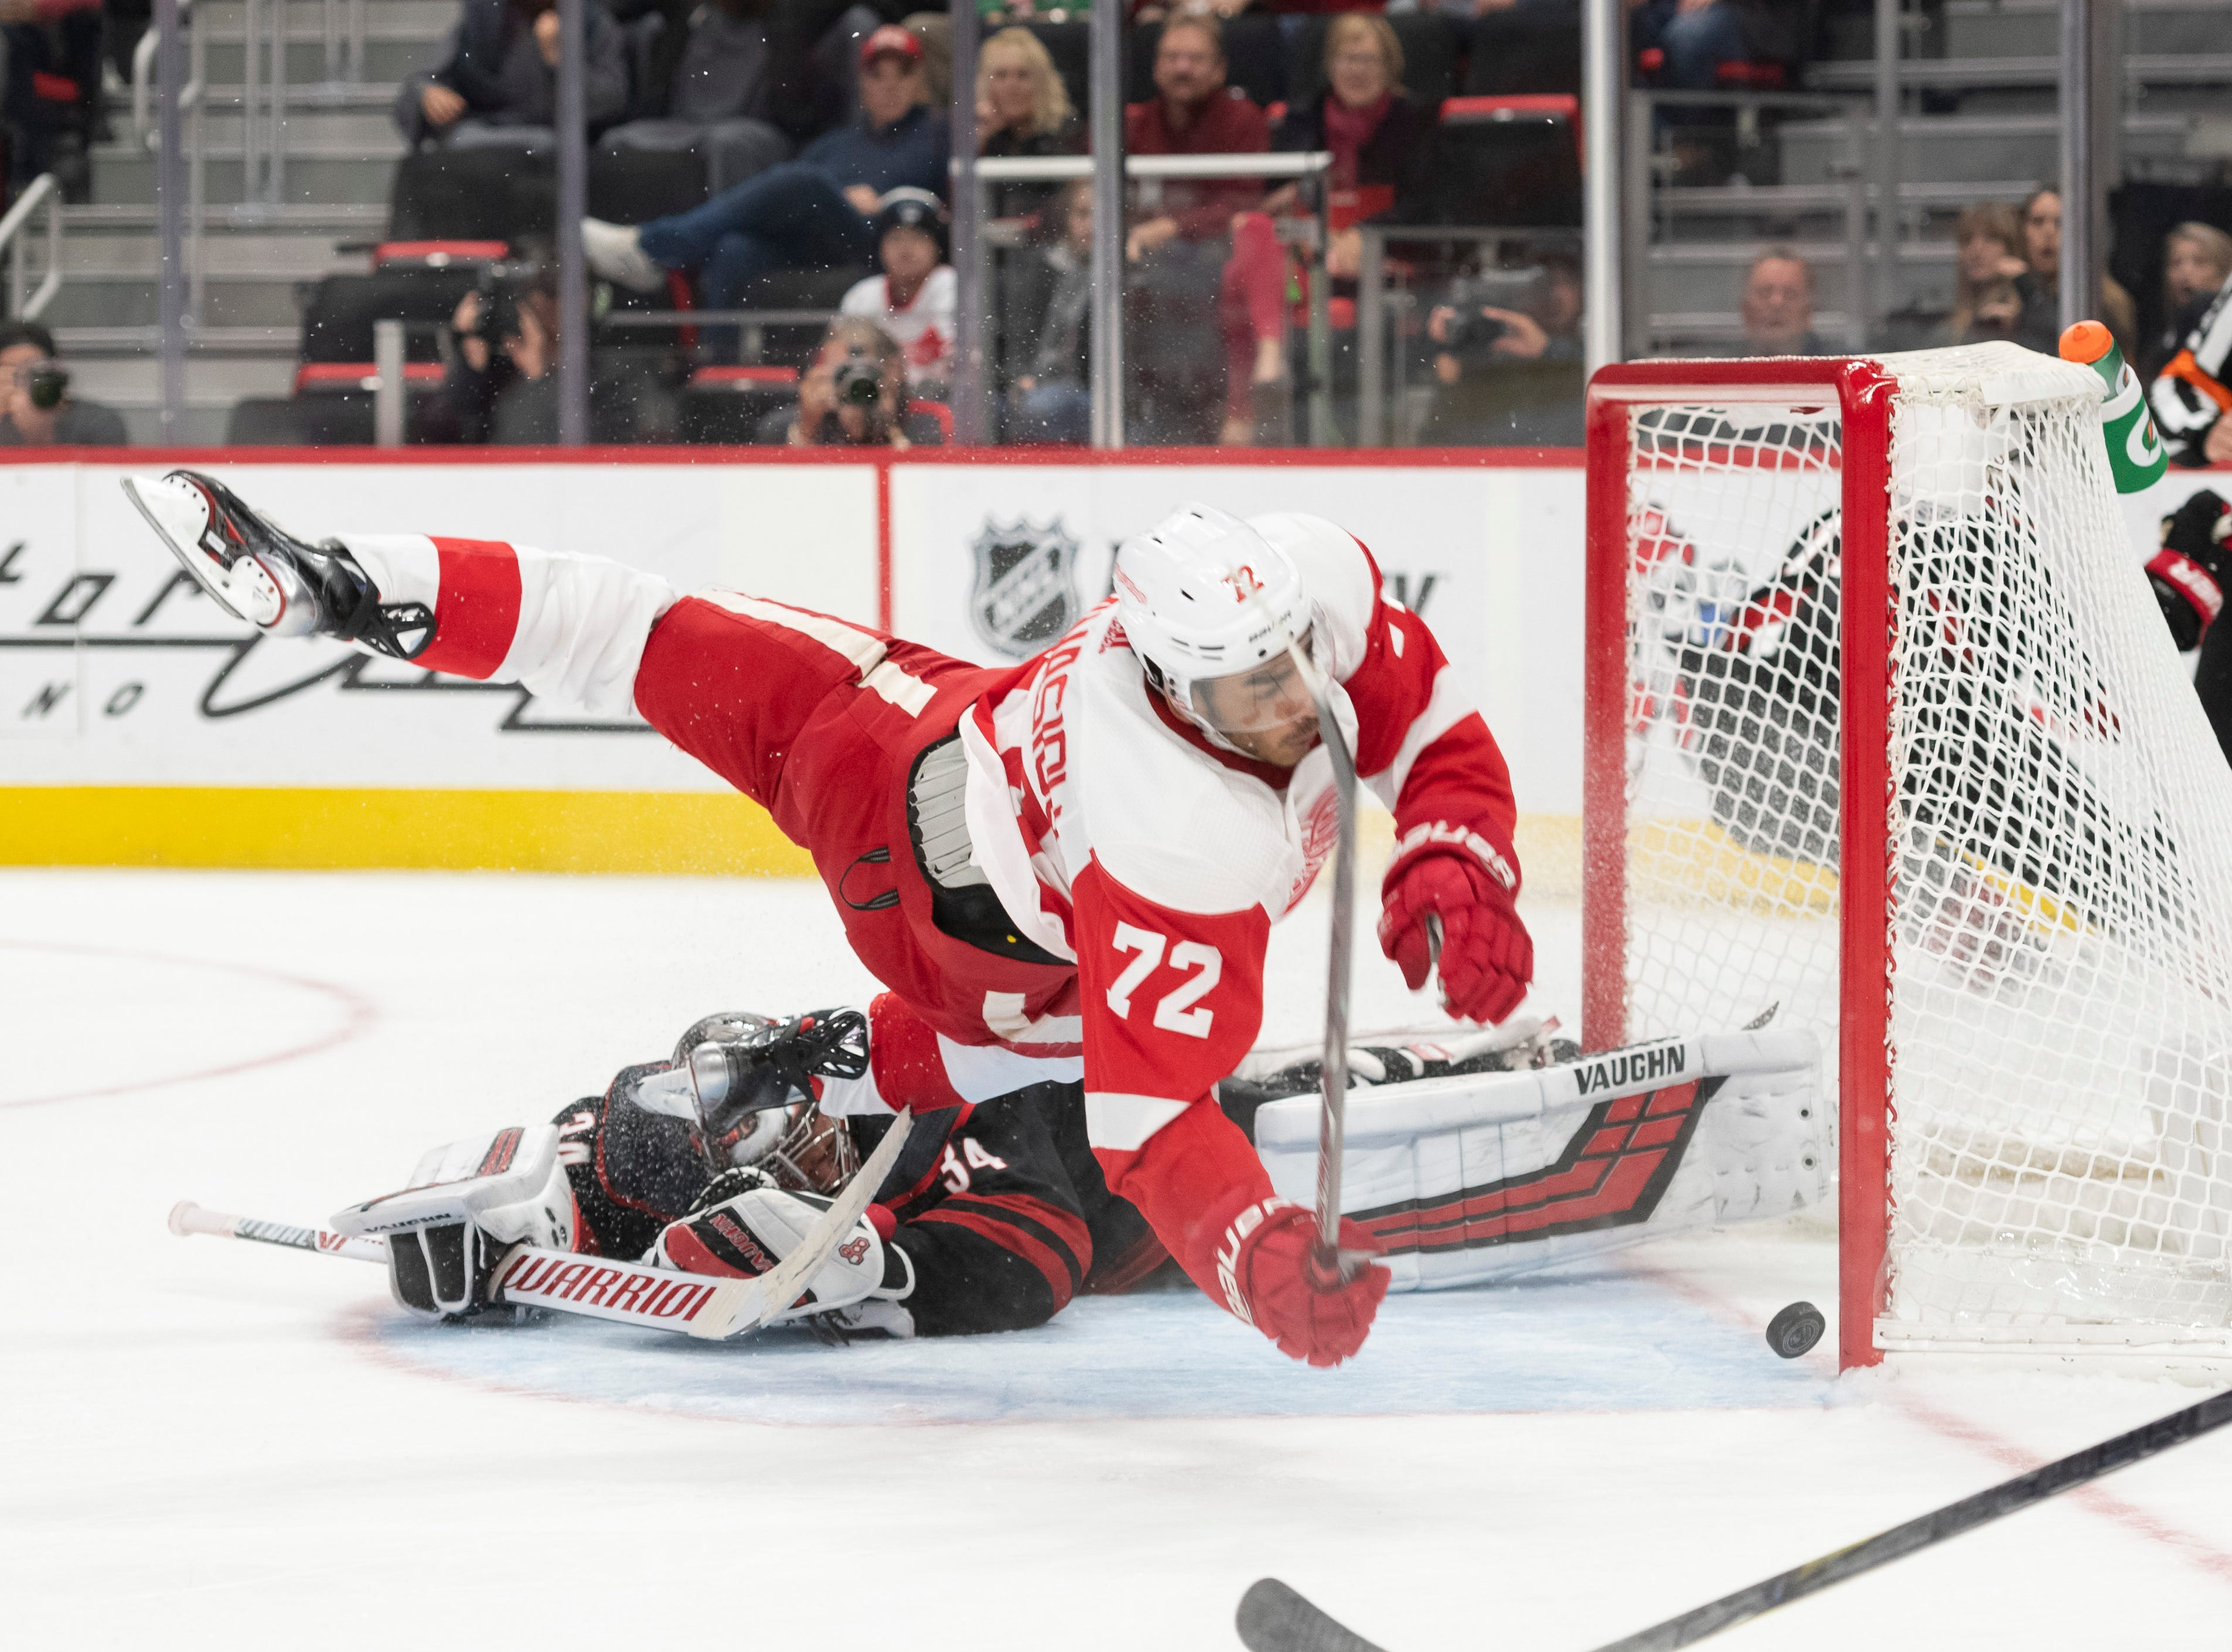 Detroit center Andreas Athanasiou collides with Carolina goaltender Petr Mrazek as he scores a goal in the third period at Little Caesars Arena, in Detroit, October 22, 2018.  Detroit lost 3-1.